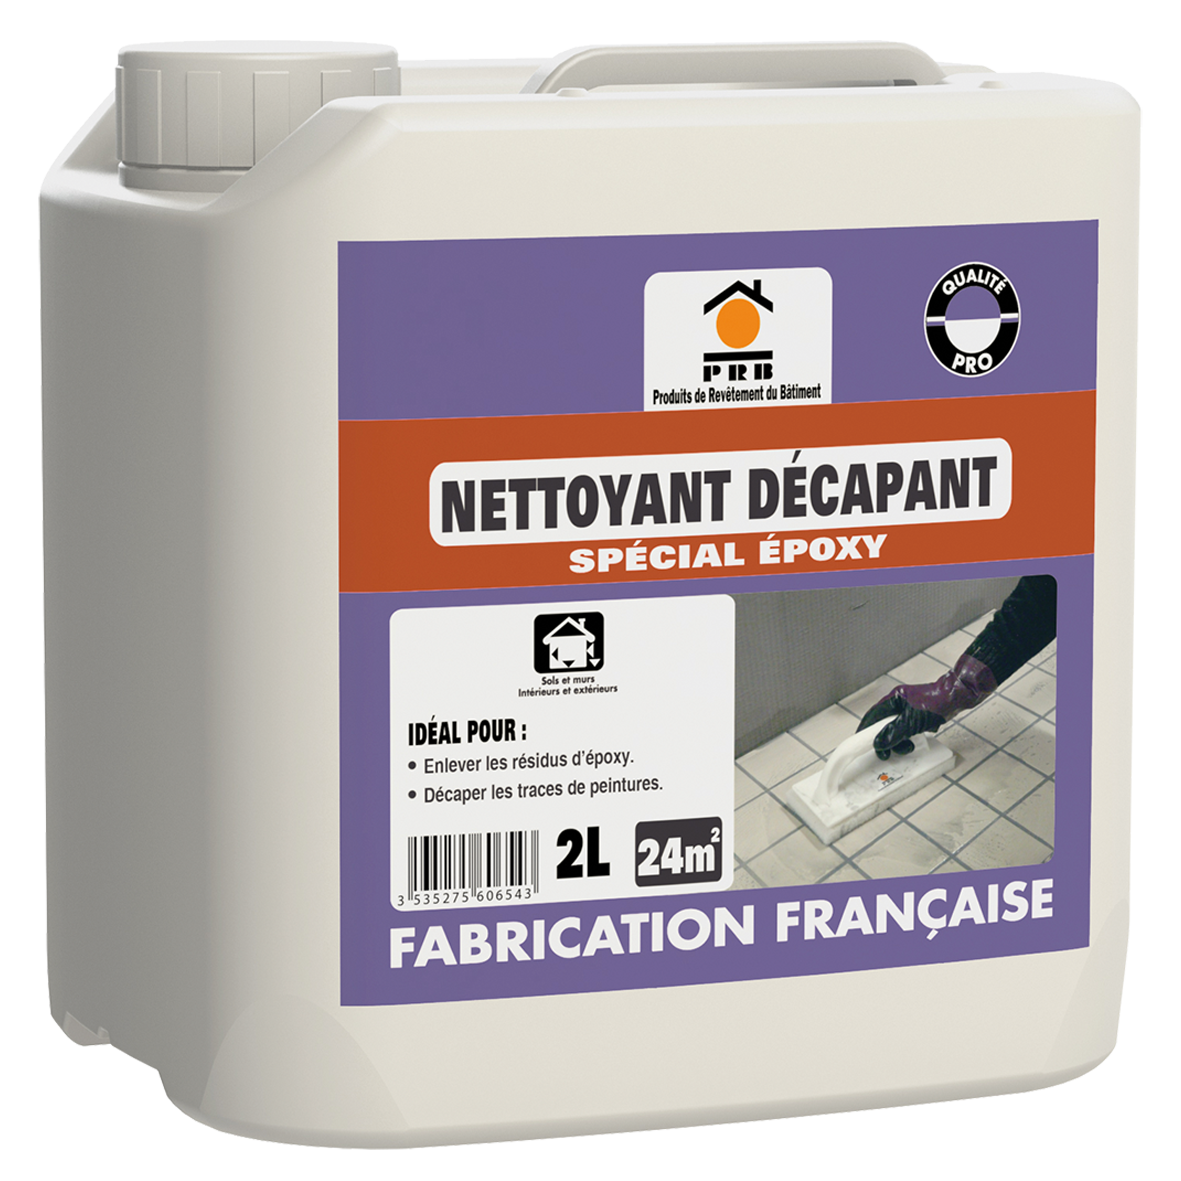 RB NETTOYANT DECAPANT SPECIAL EPOXY 2 L